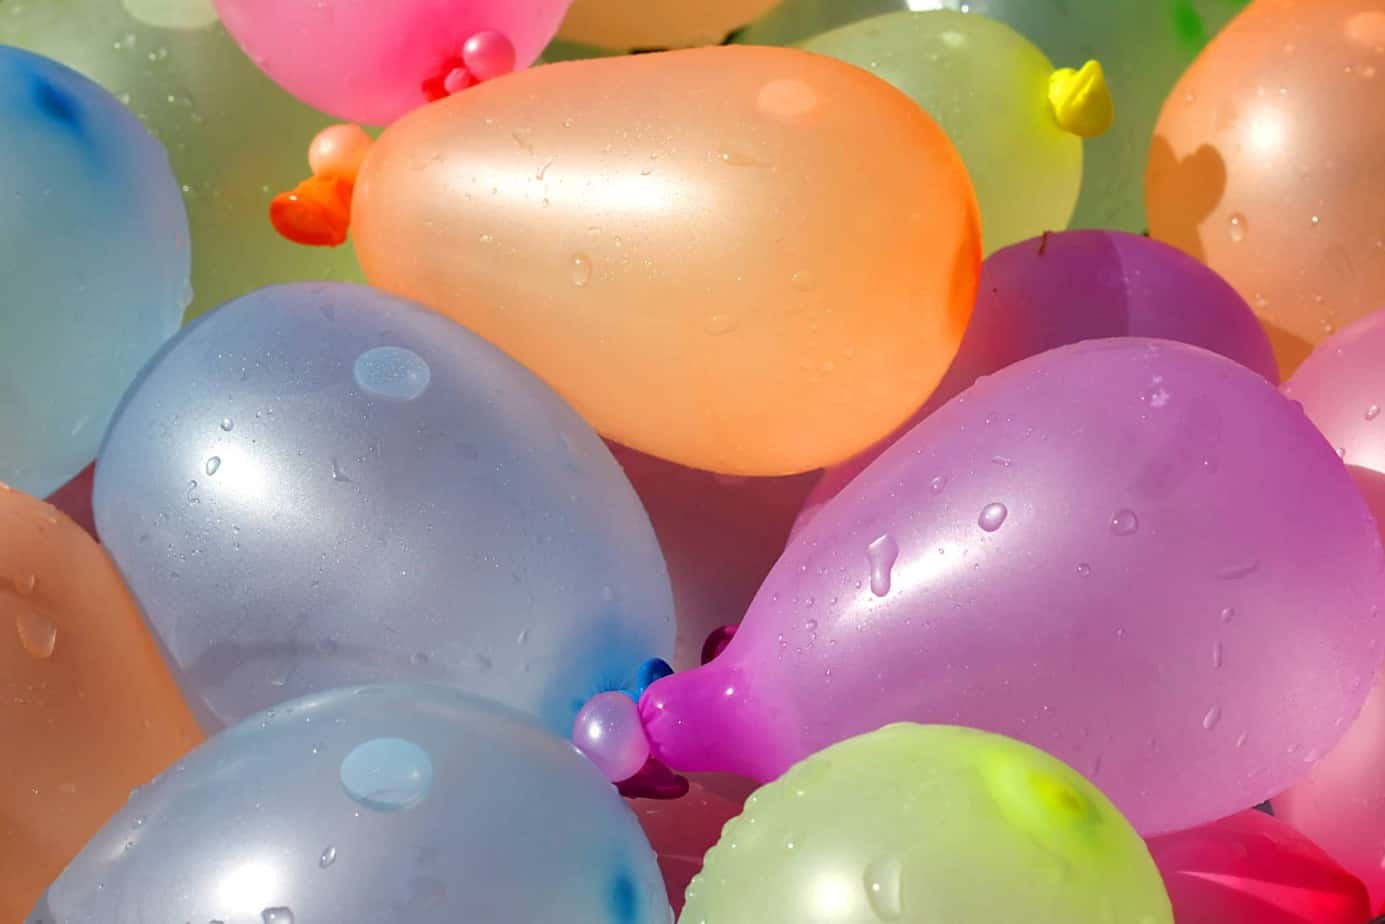 water balloons are a fun outdoor activity for kids